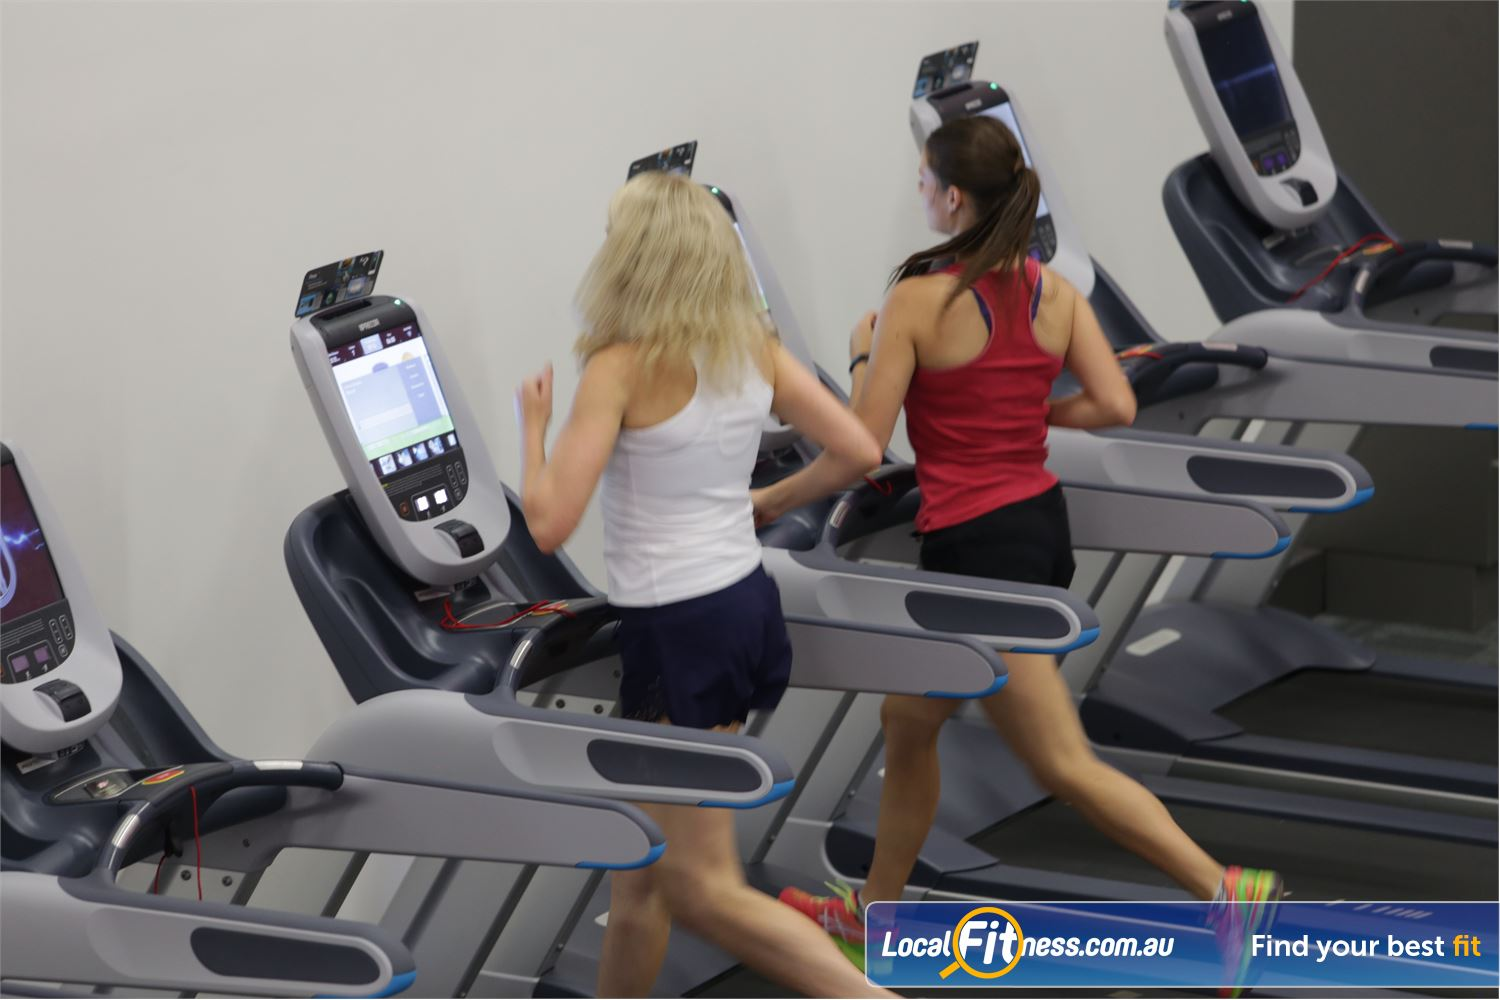 Fernwood Fitness Near Kialla State of the art cardio equipment with 24 hour Shepparton gym access.